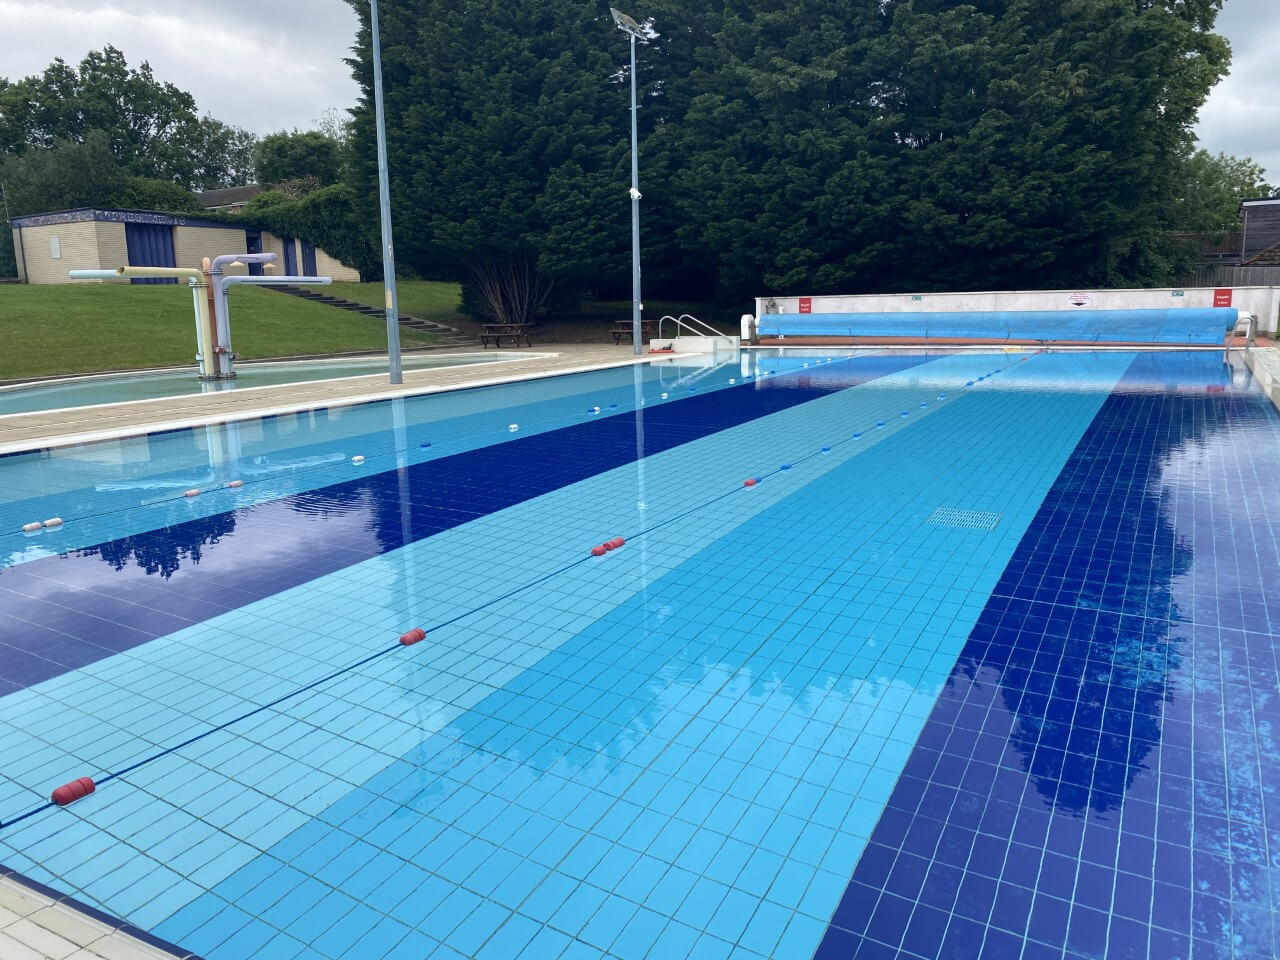 Hemel outdoor pool with trees in background